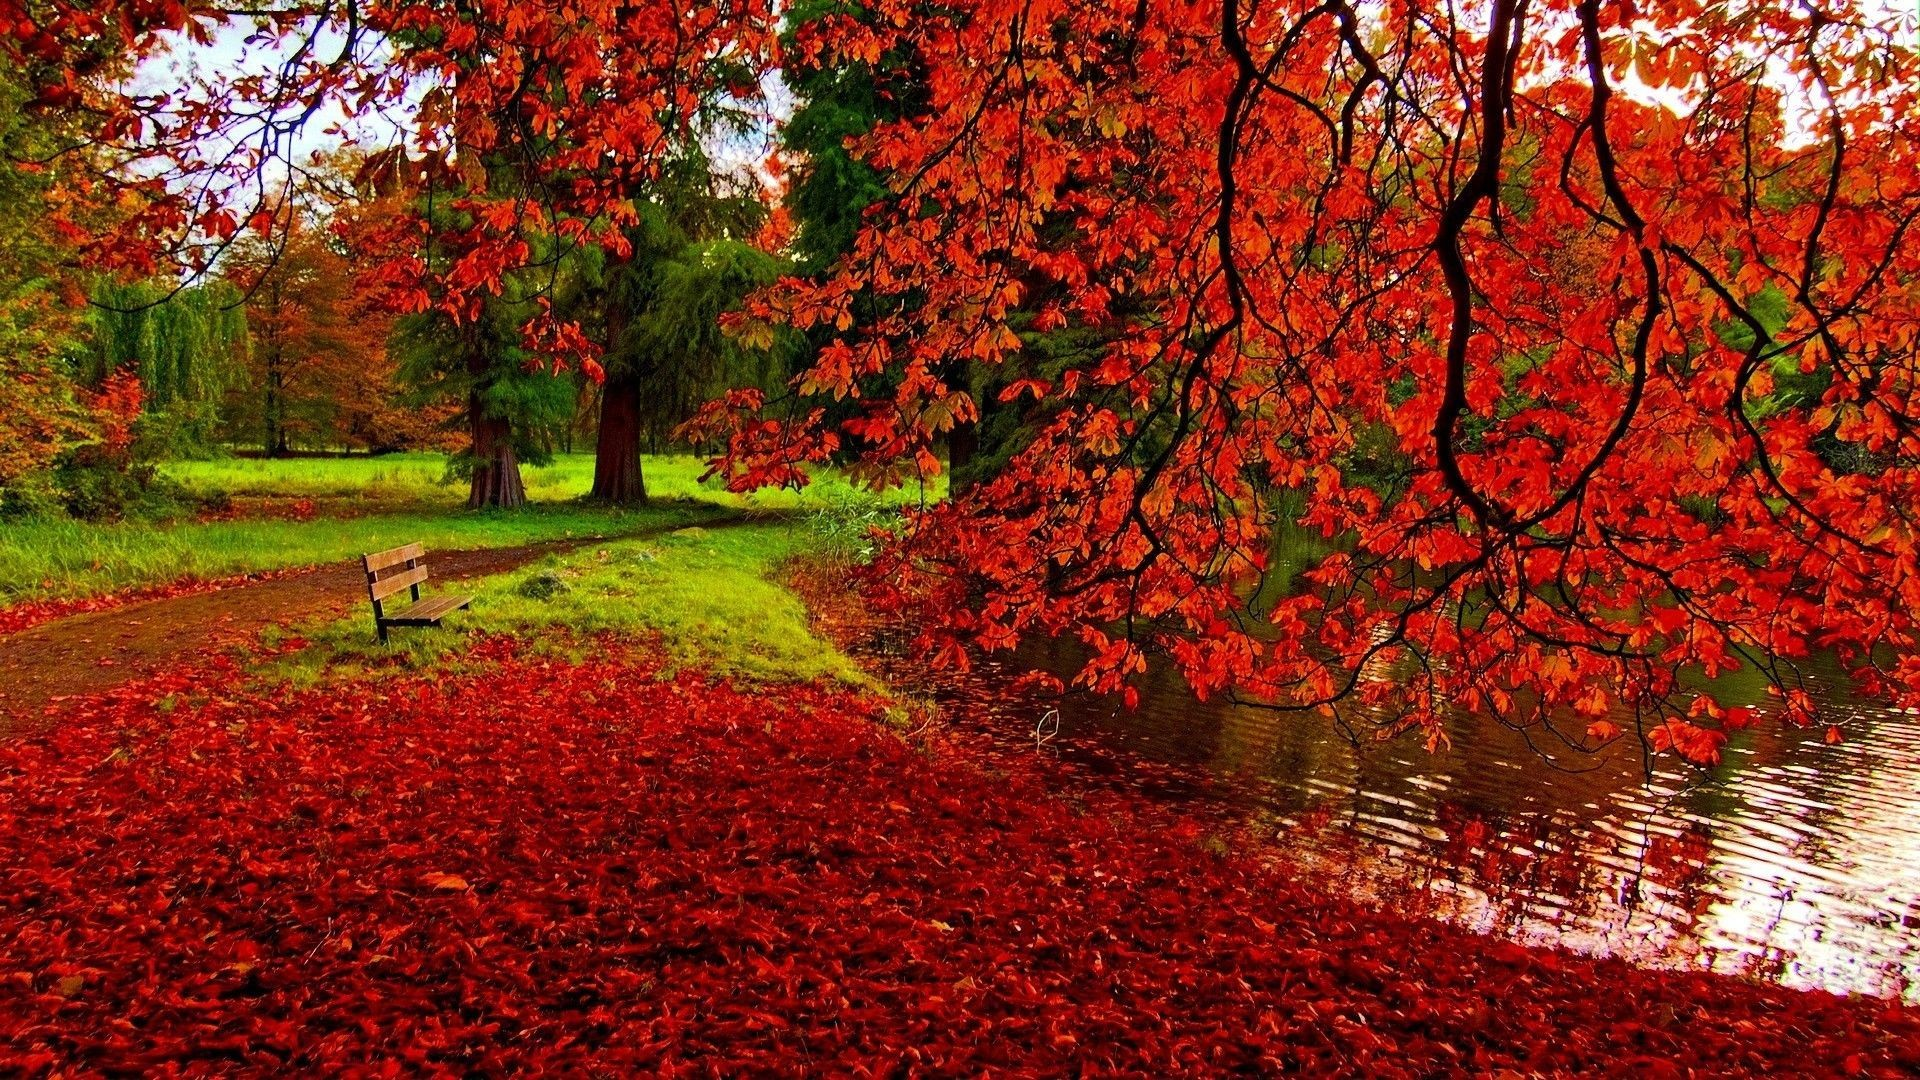 Autumn Pictures For Desktop Backgrounds 1